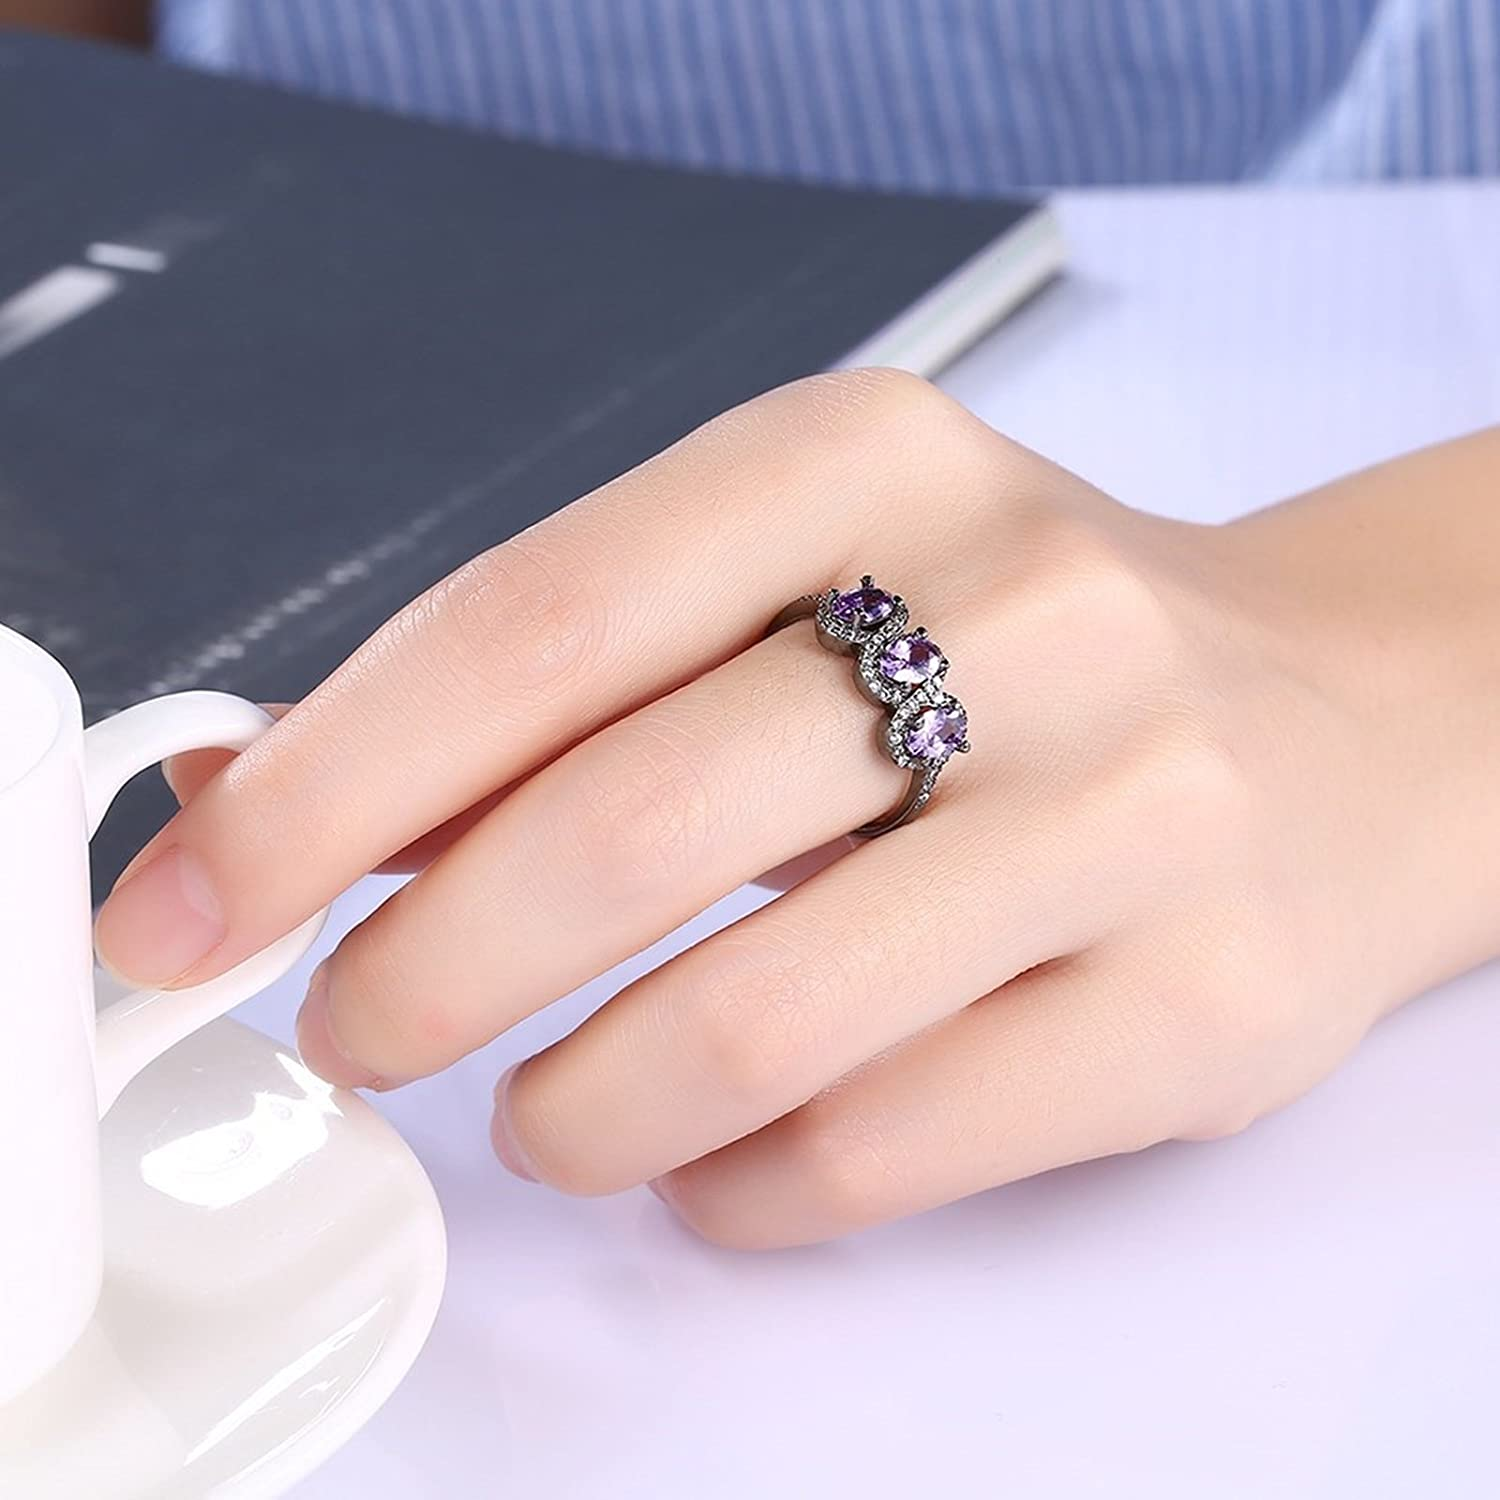 Amazon.com: Adisaer Womens Black Gold Plated Rings Crystal Oval ...